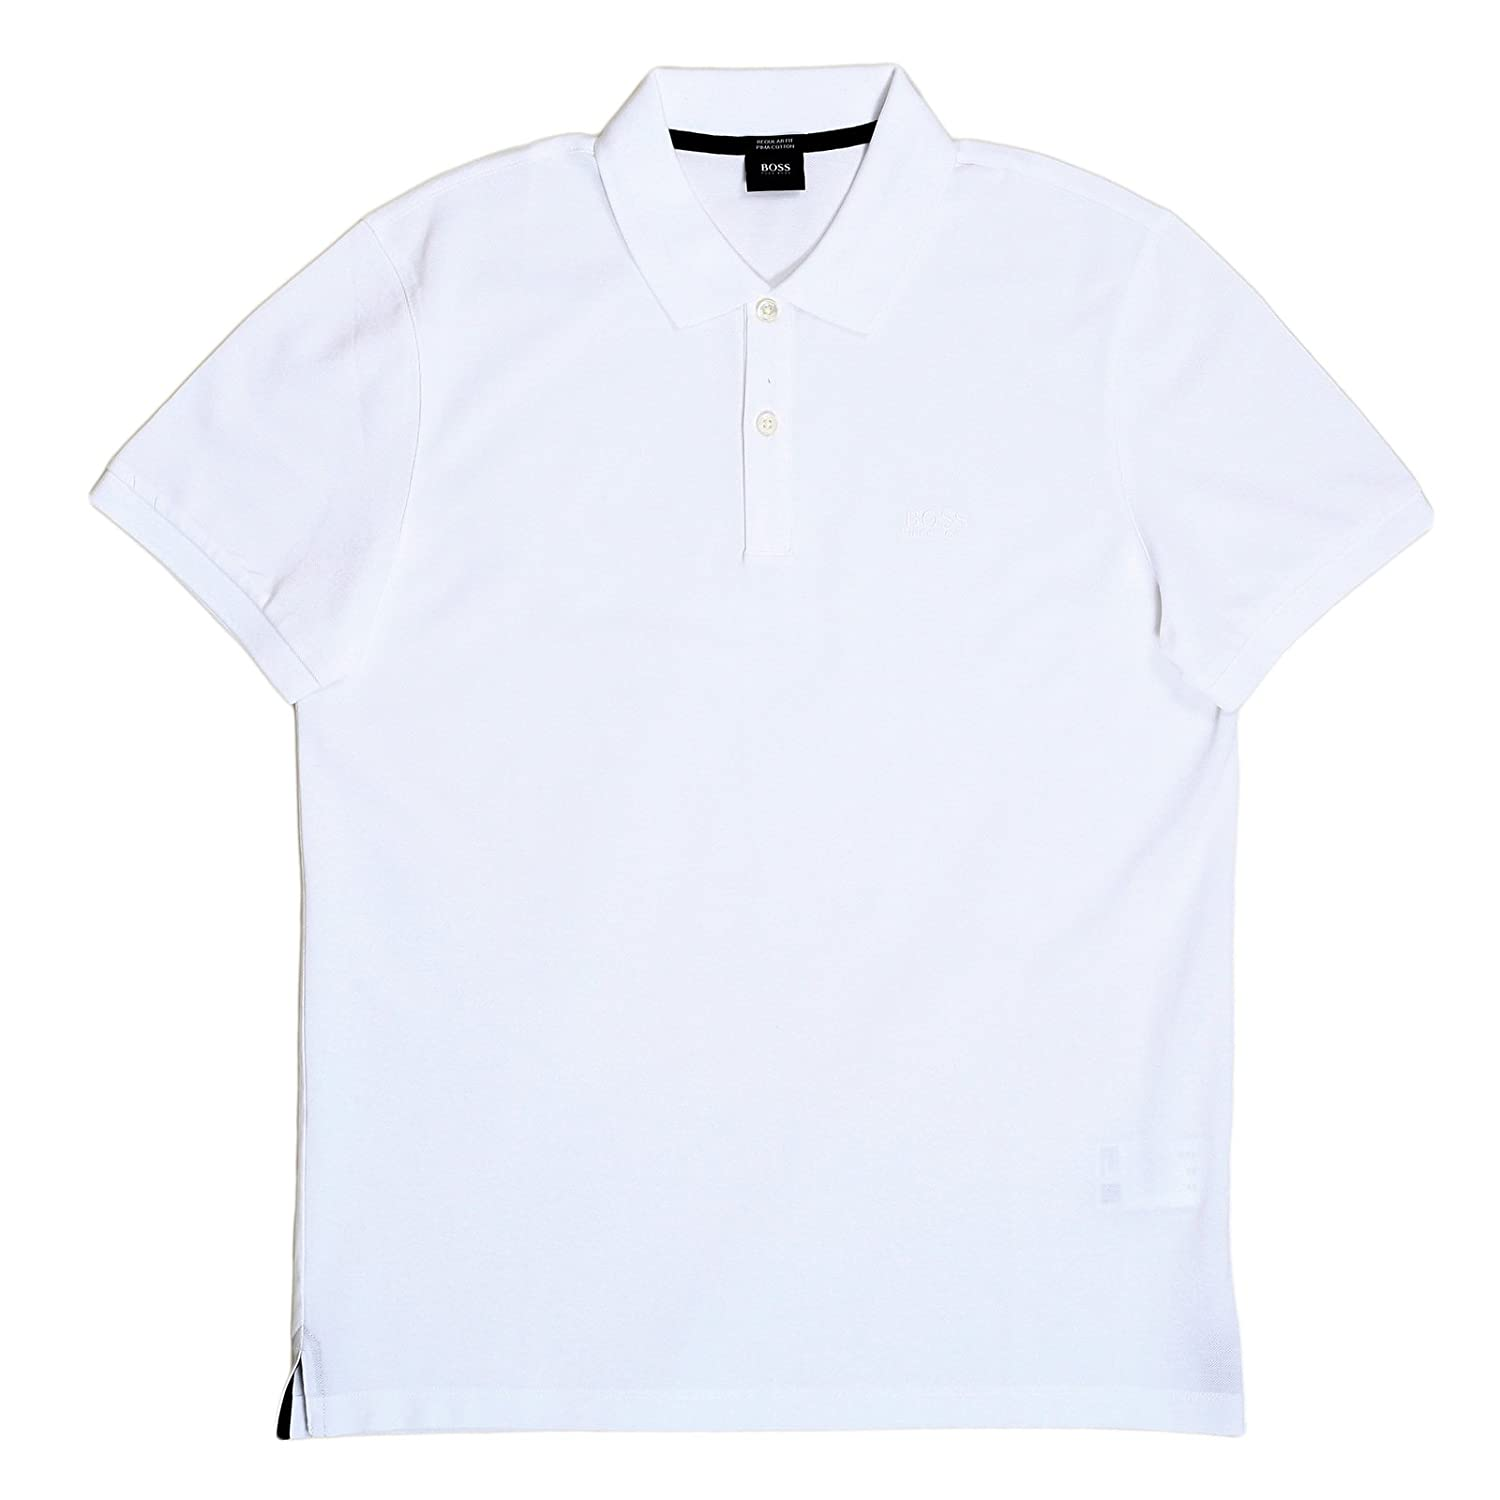 d08bfee9c Hugo Boss White Boss Polo Shirt With Chest Logo BOSS5783: Amazon.co.uk:  Clothing